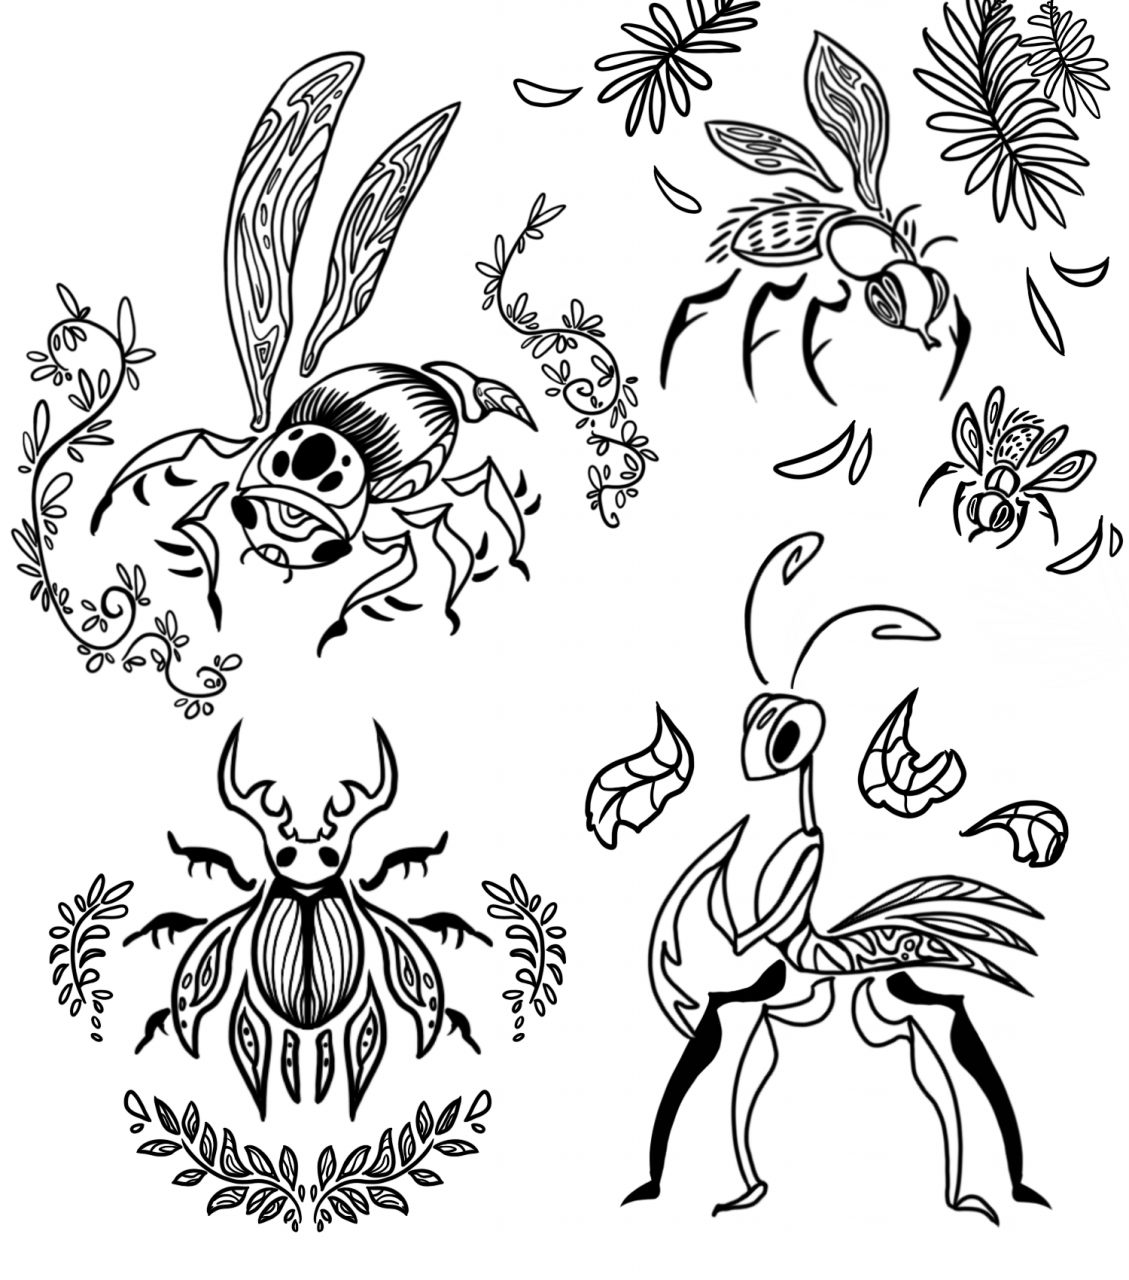 Abstract bugs tattoo designs [OC]